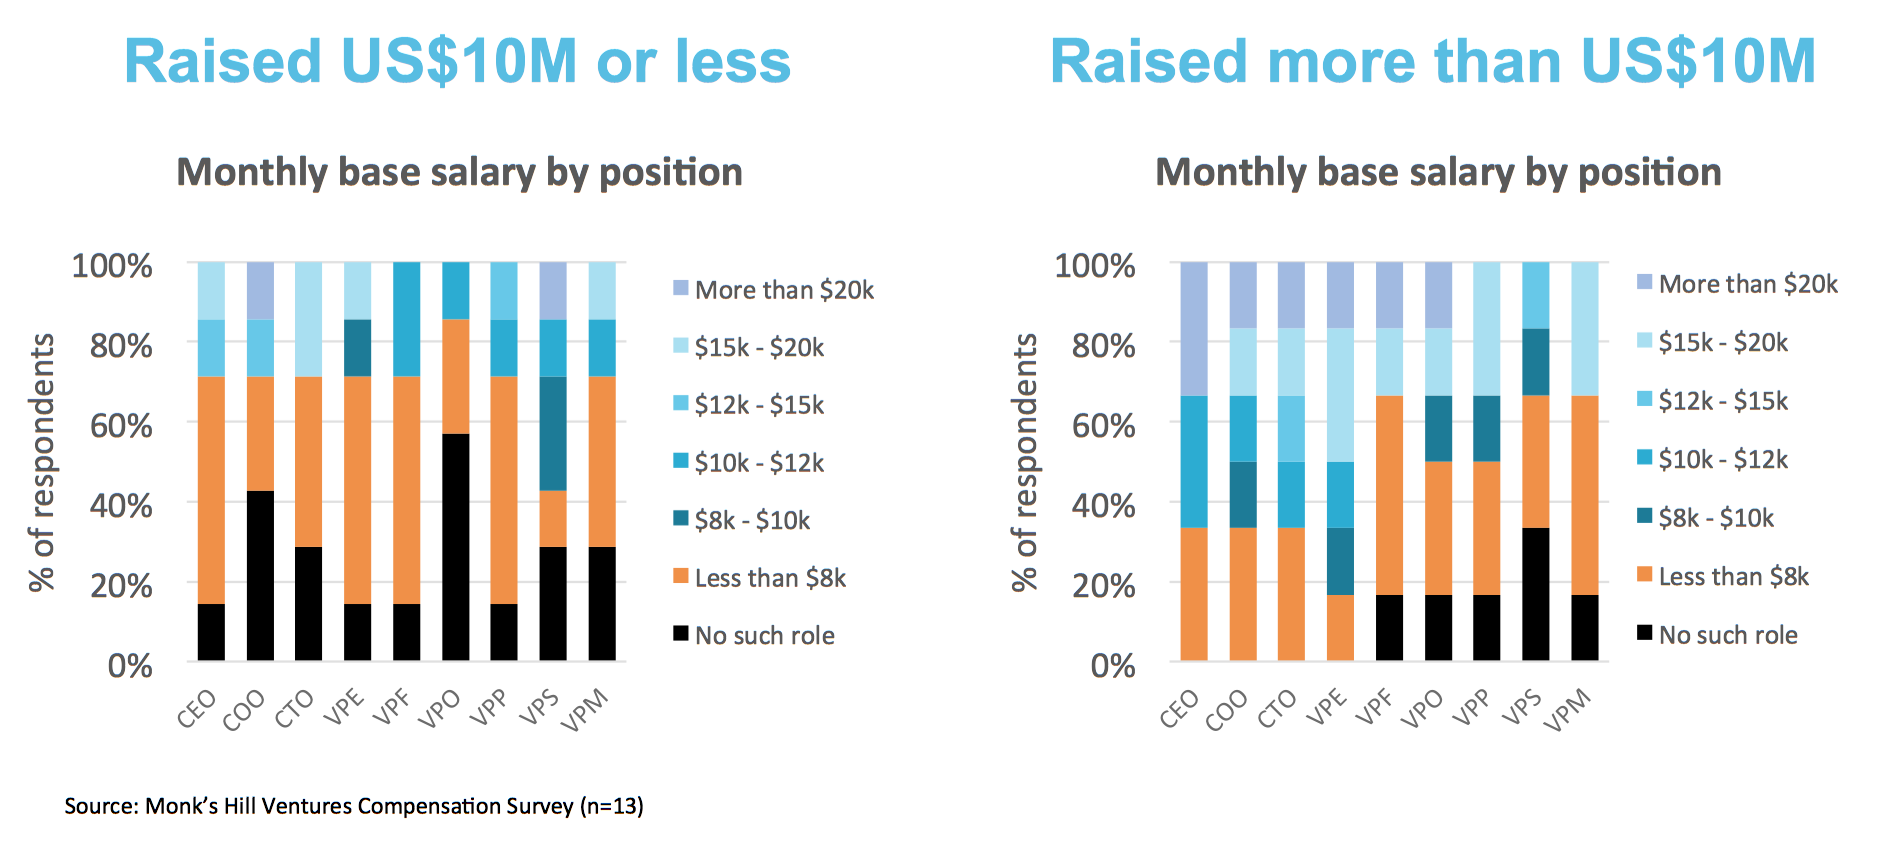 Chart 4  : Distribution of base monthly salary levels by position, for companies that have raised <US$10M, and those that have raised >US$10M.